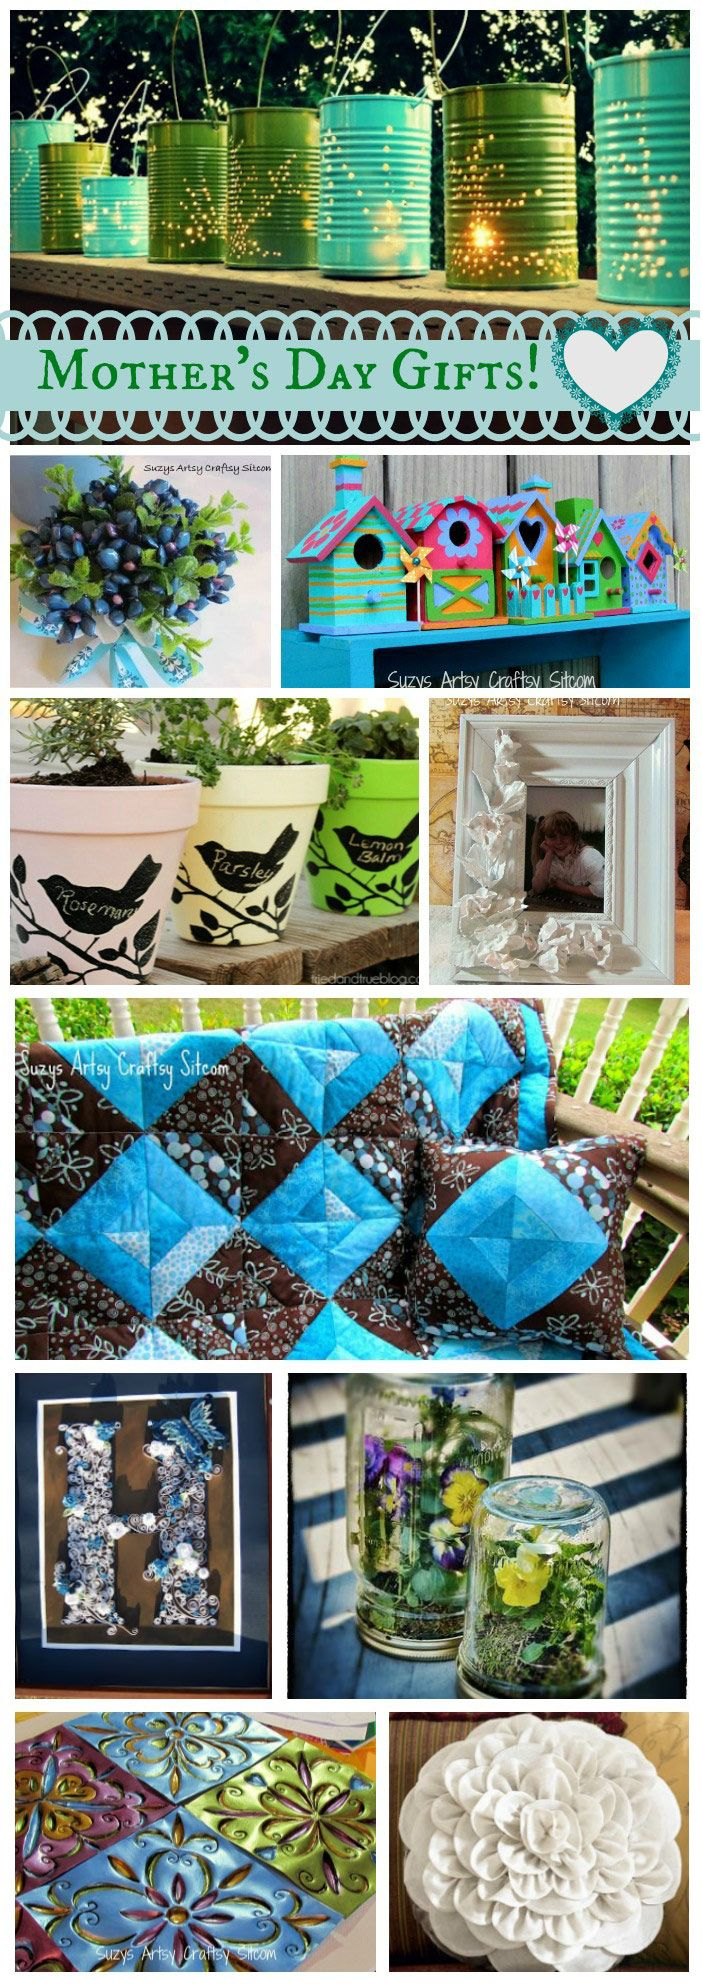 Ten DIY Mothers Day gifts that mom will love!